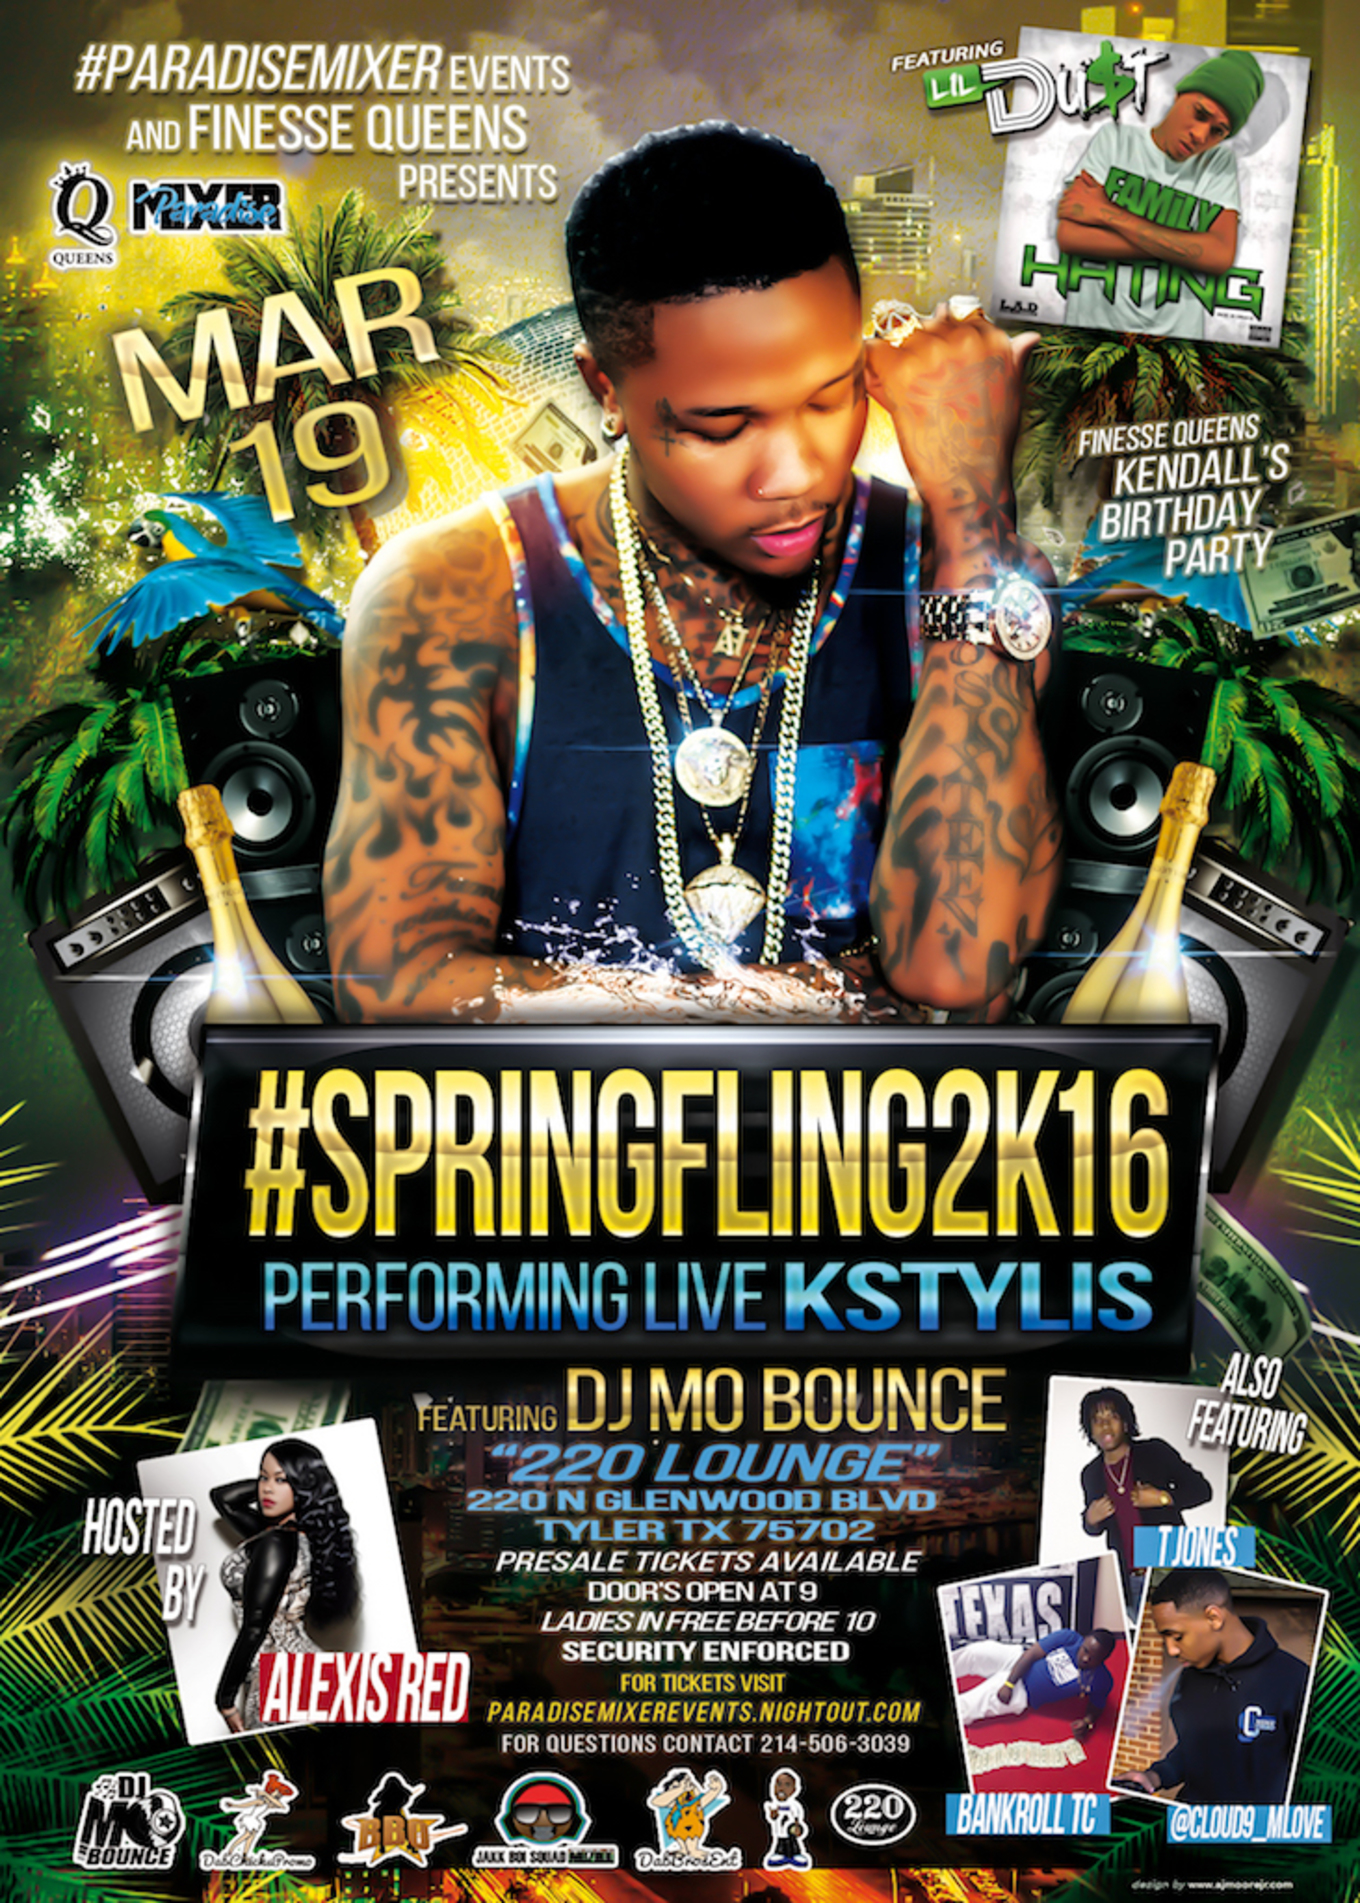 Spring Fling At 220 Lounge Performance By K Stylis Tickets 220 Lounge Tyler Tx March 19 2016